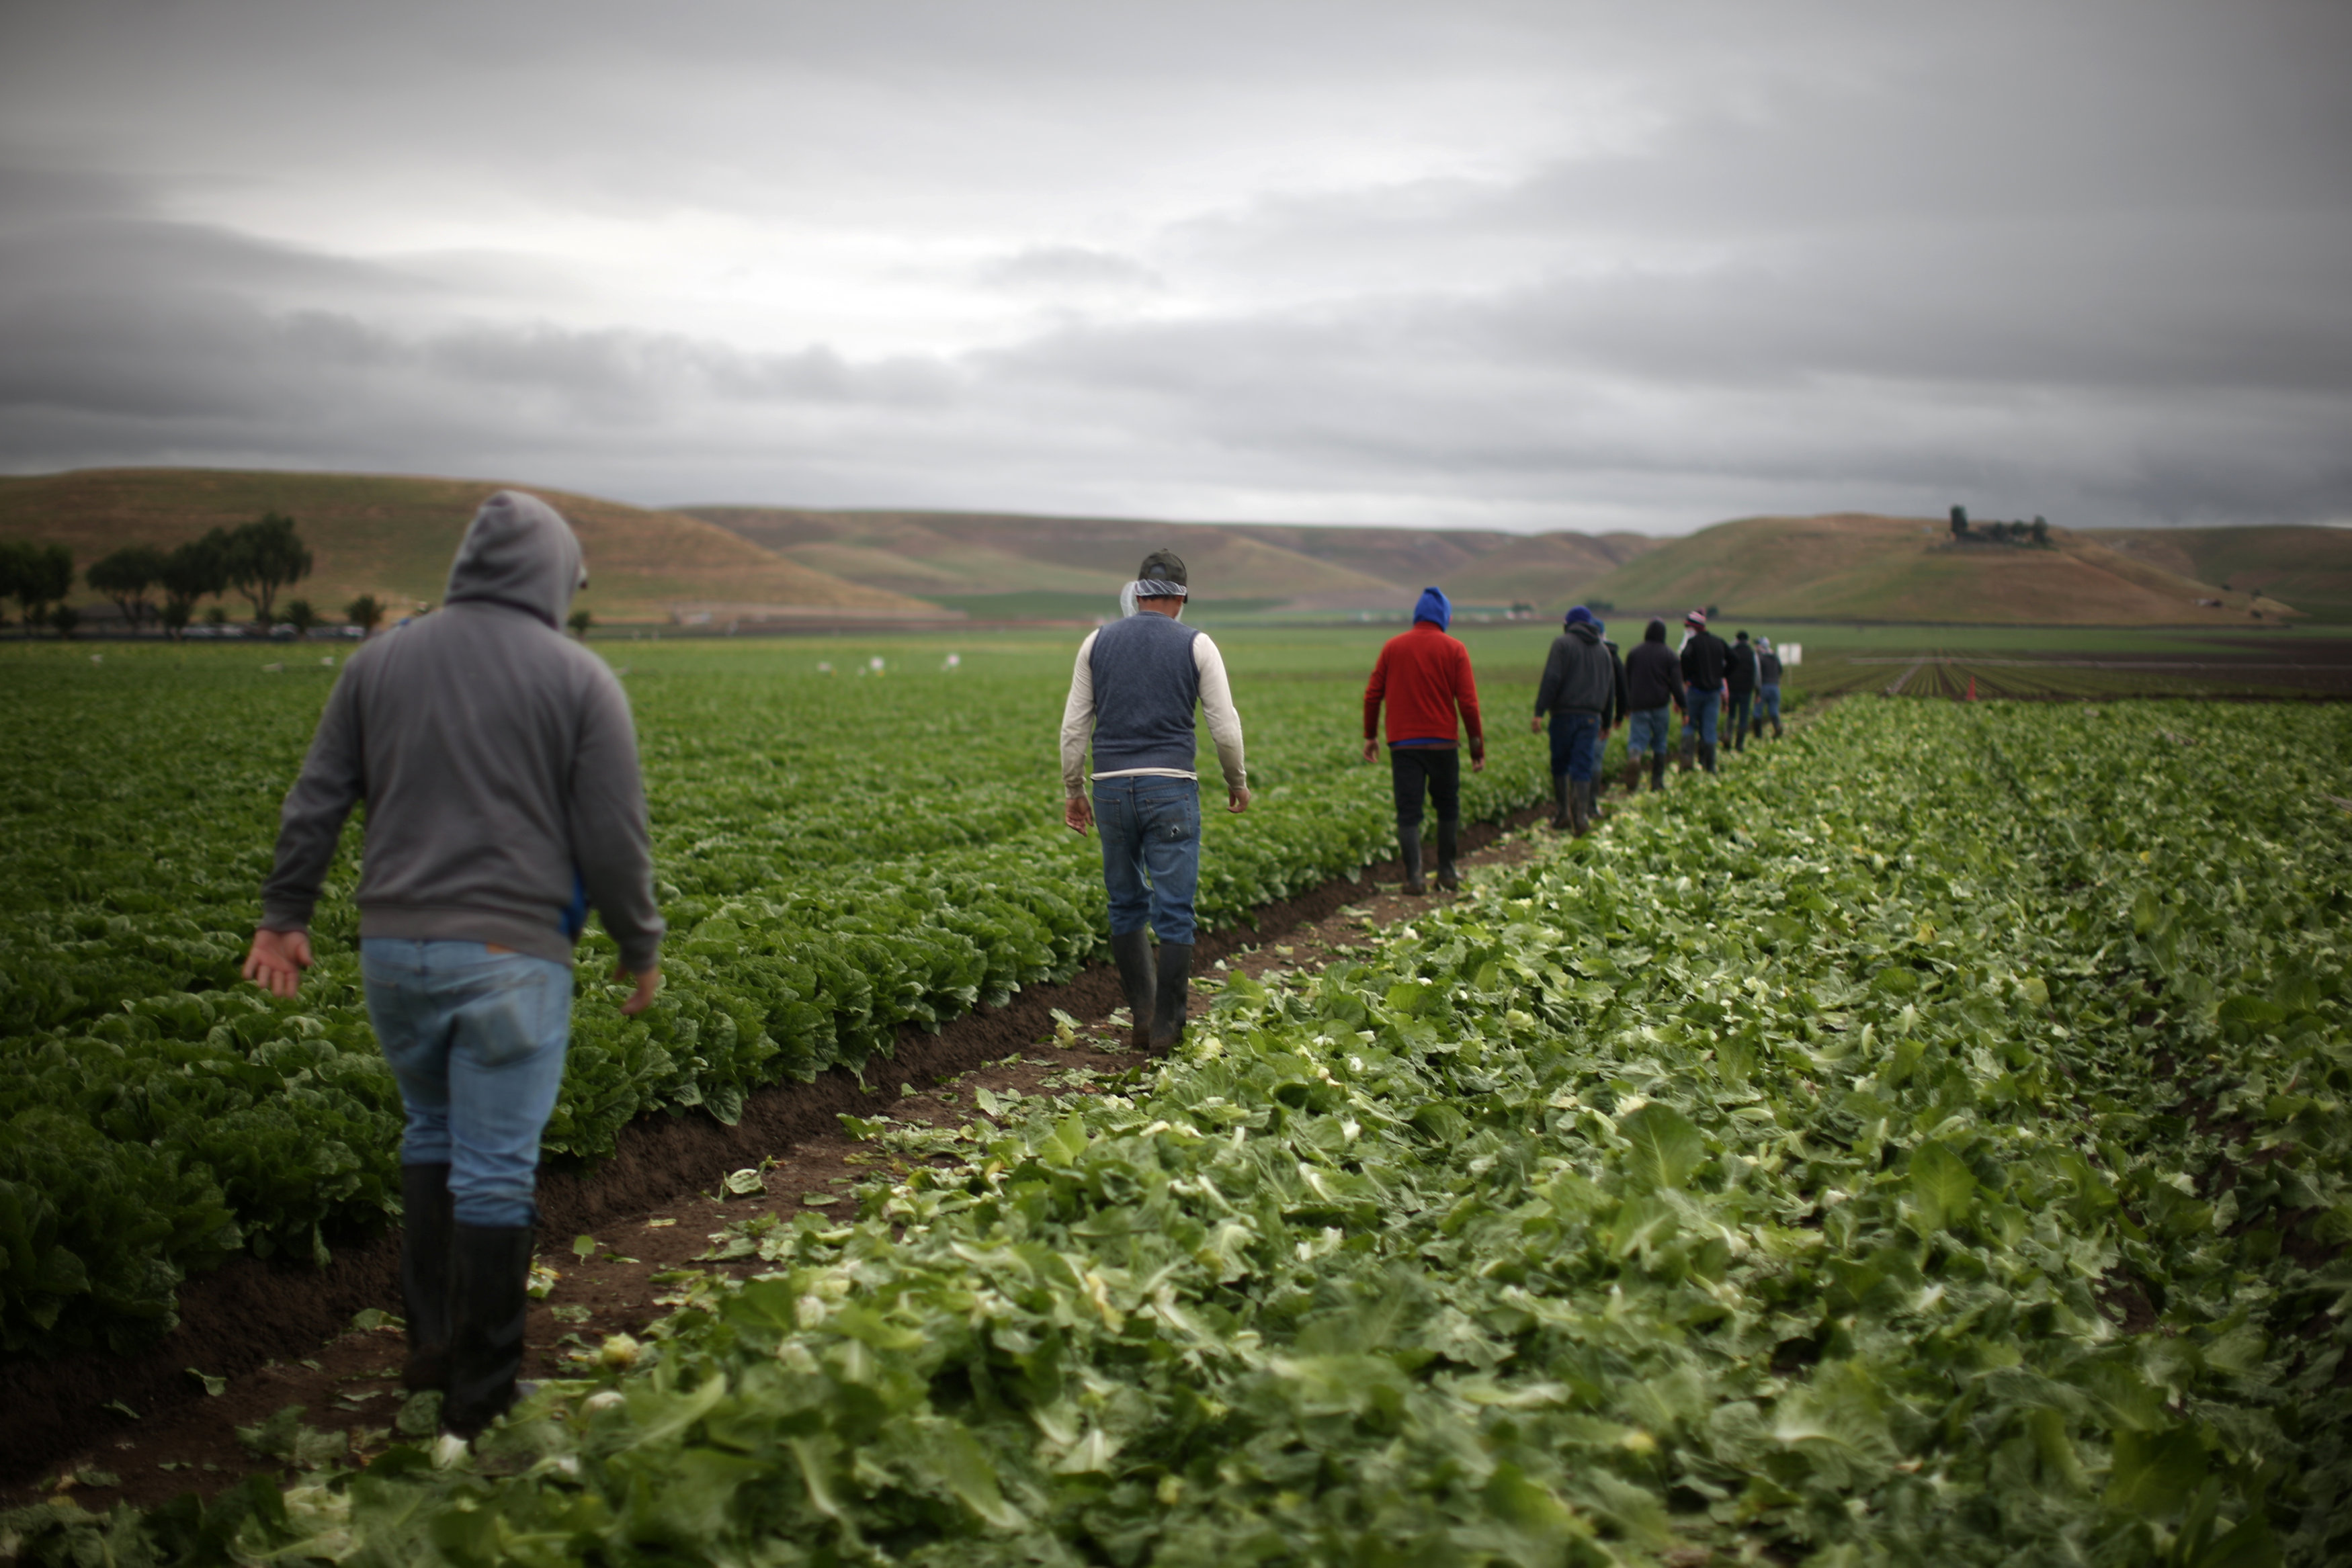 Migrant farmworkers with H-2A visas walk to take a break after harvesting romaine lettuce in King City, California, U.S